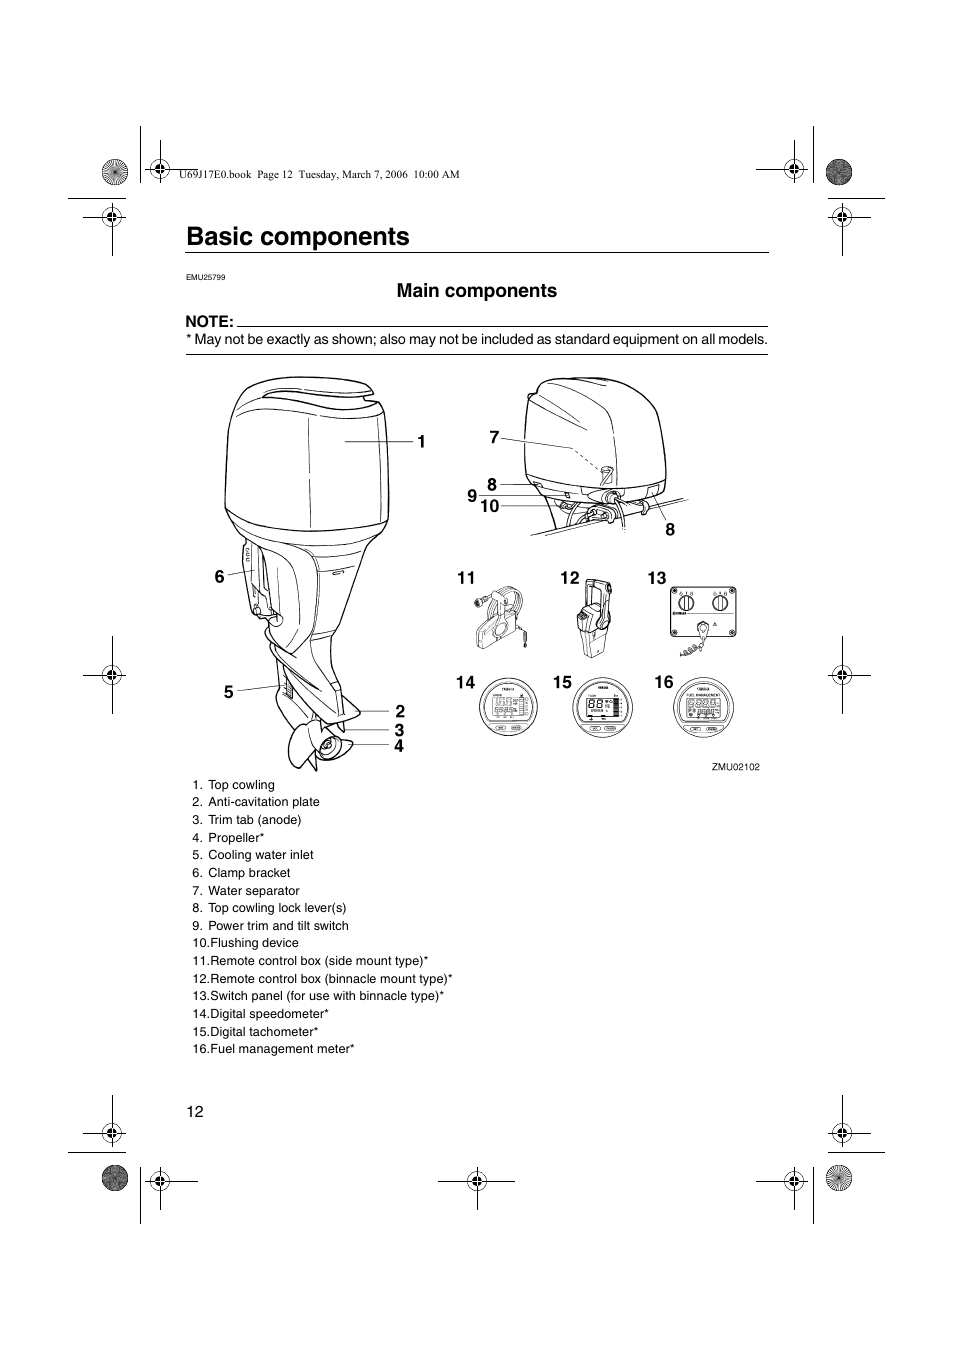 Basic components, Main components | Yamaha LF225 User Manual | Page 18 / 94